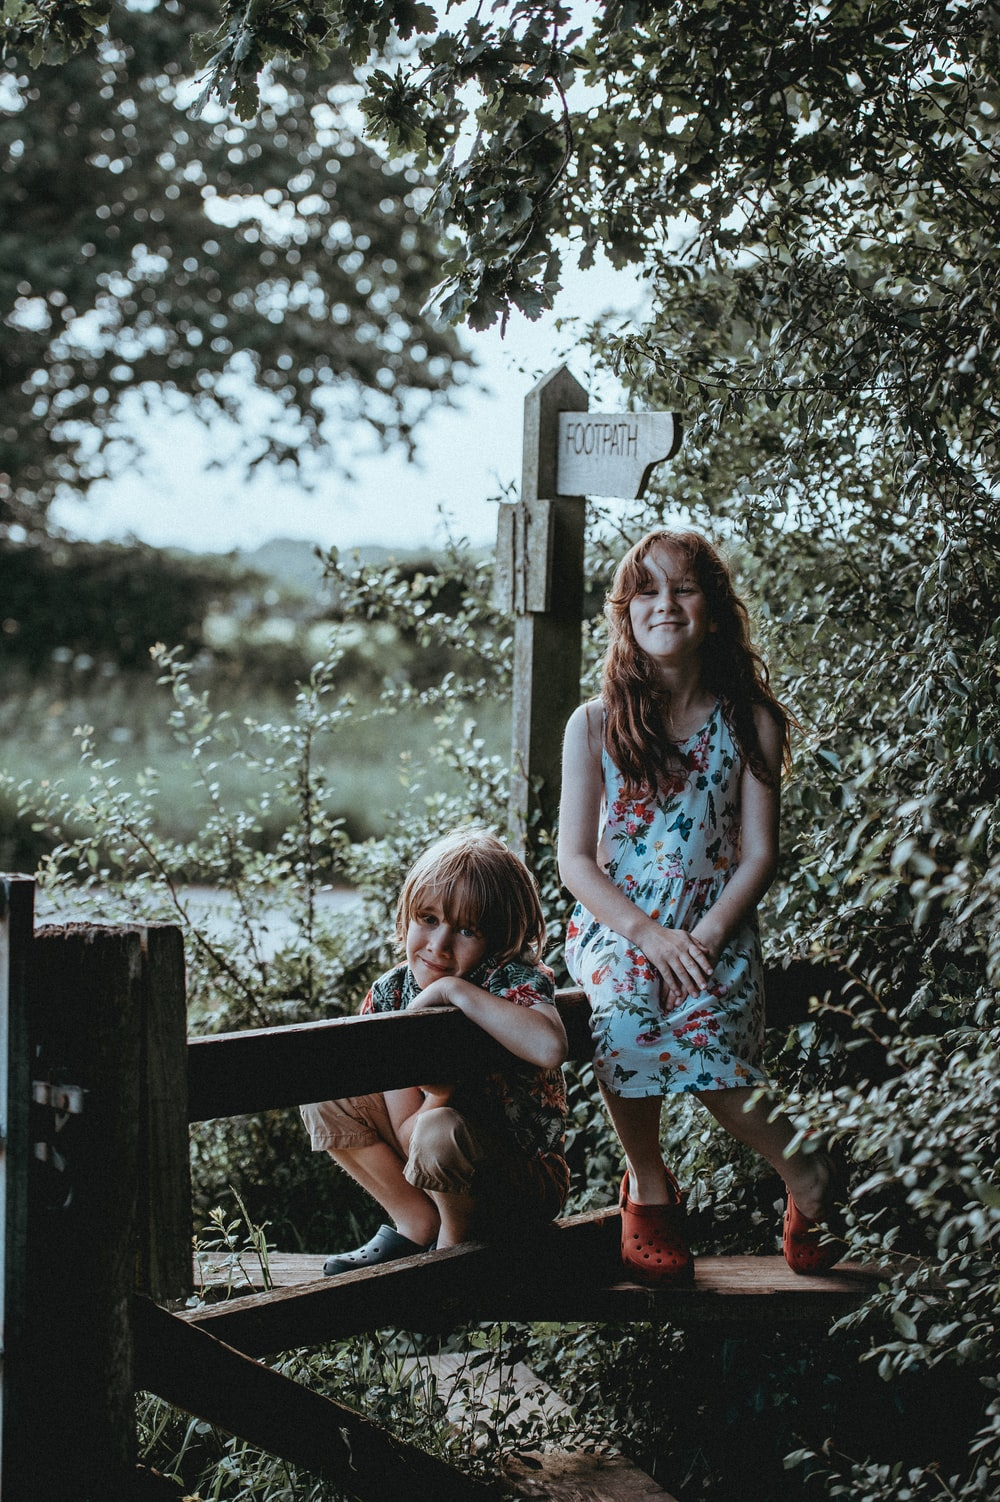 photo of two boy and girl sitting on bench